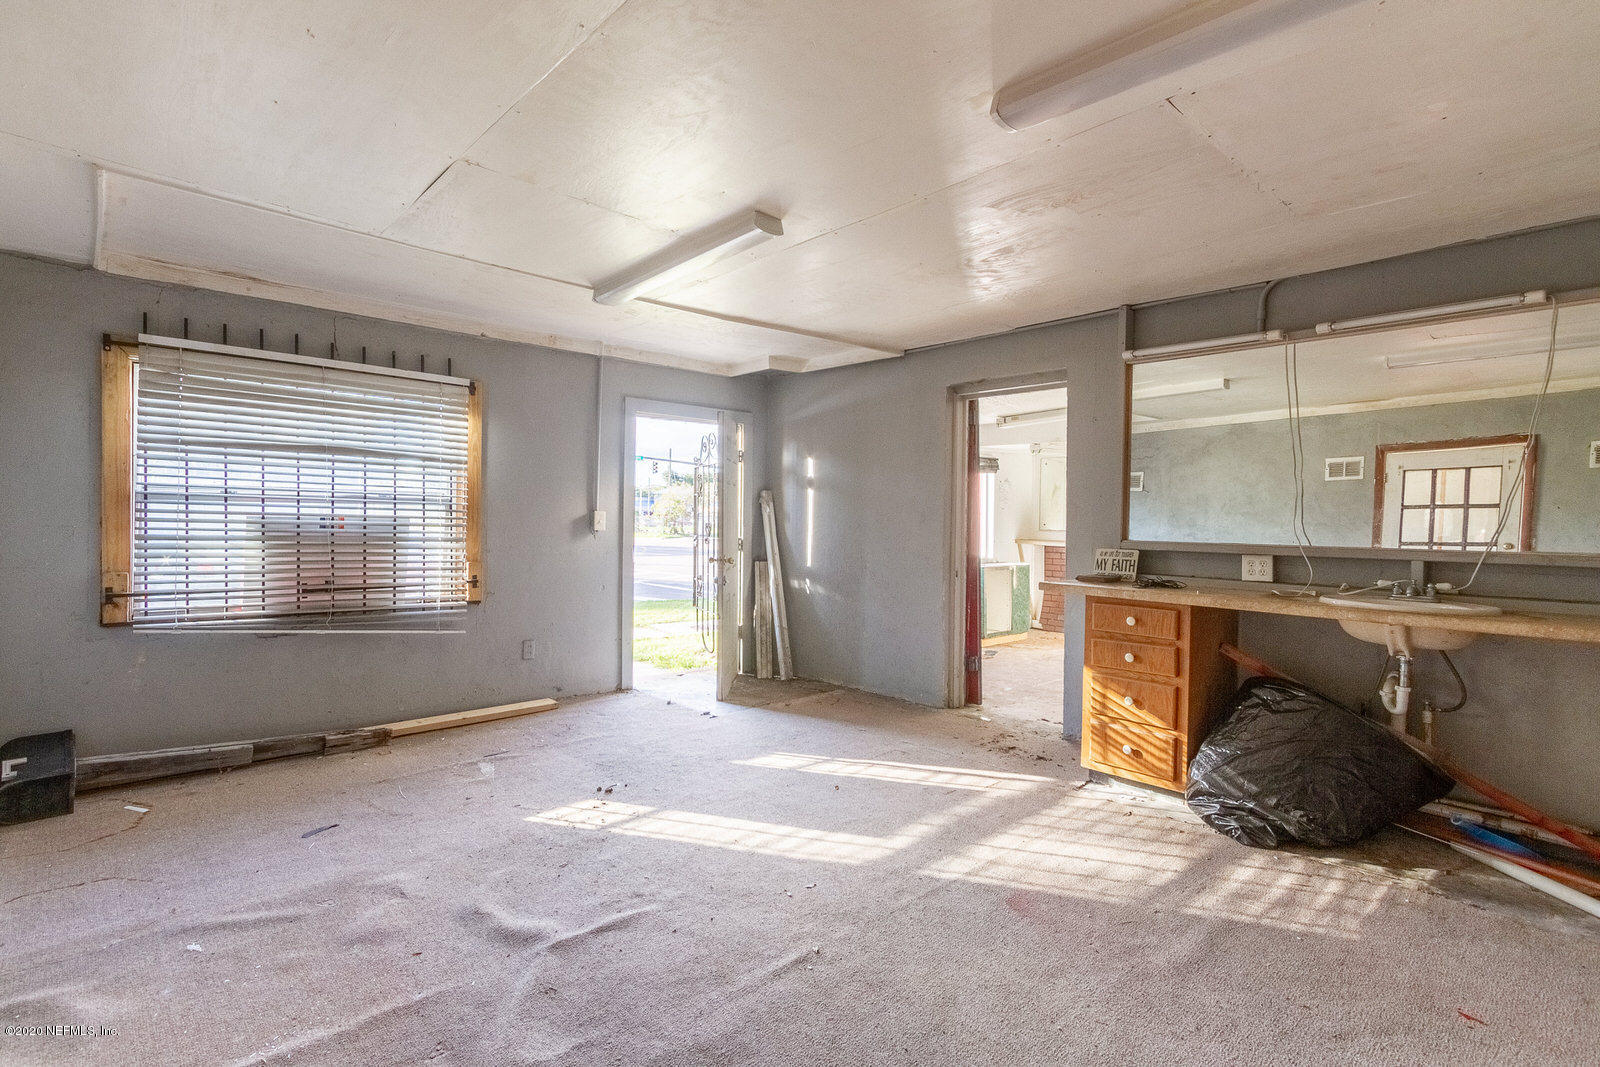 2905 MONCRIEF, JACKSONVILLE, FLORIDA 32209, 5 Bedrooms Bedrooms, ,2 BathroomsBathrooms,Investment / MultiFamily,For sale,MONCRIEF,1081495